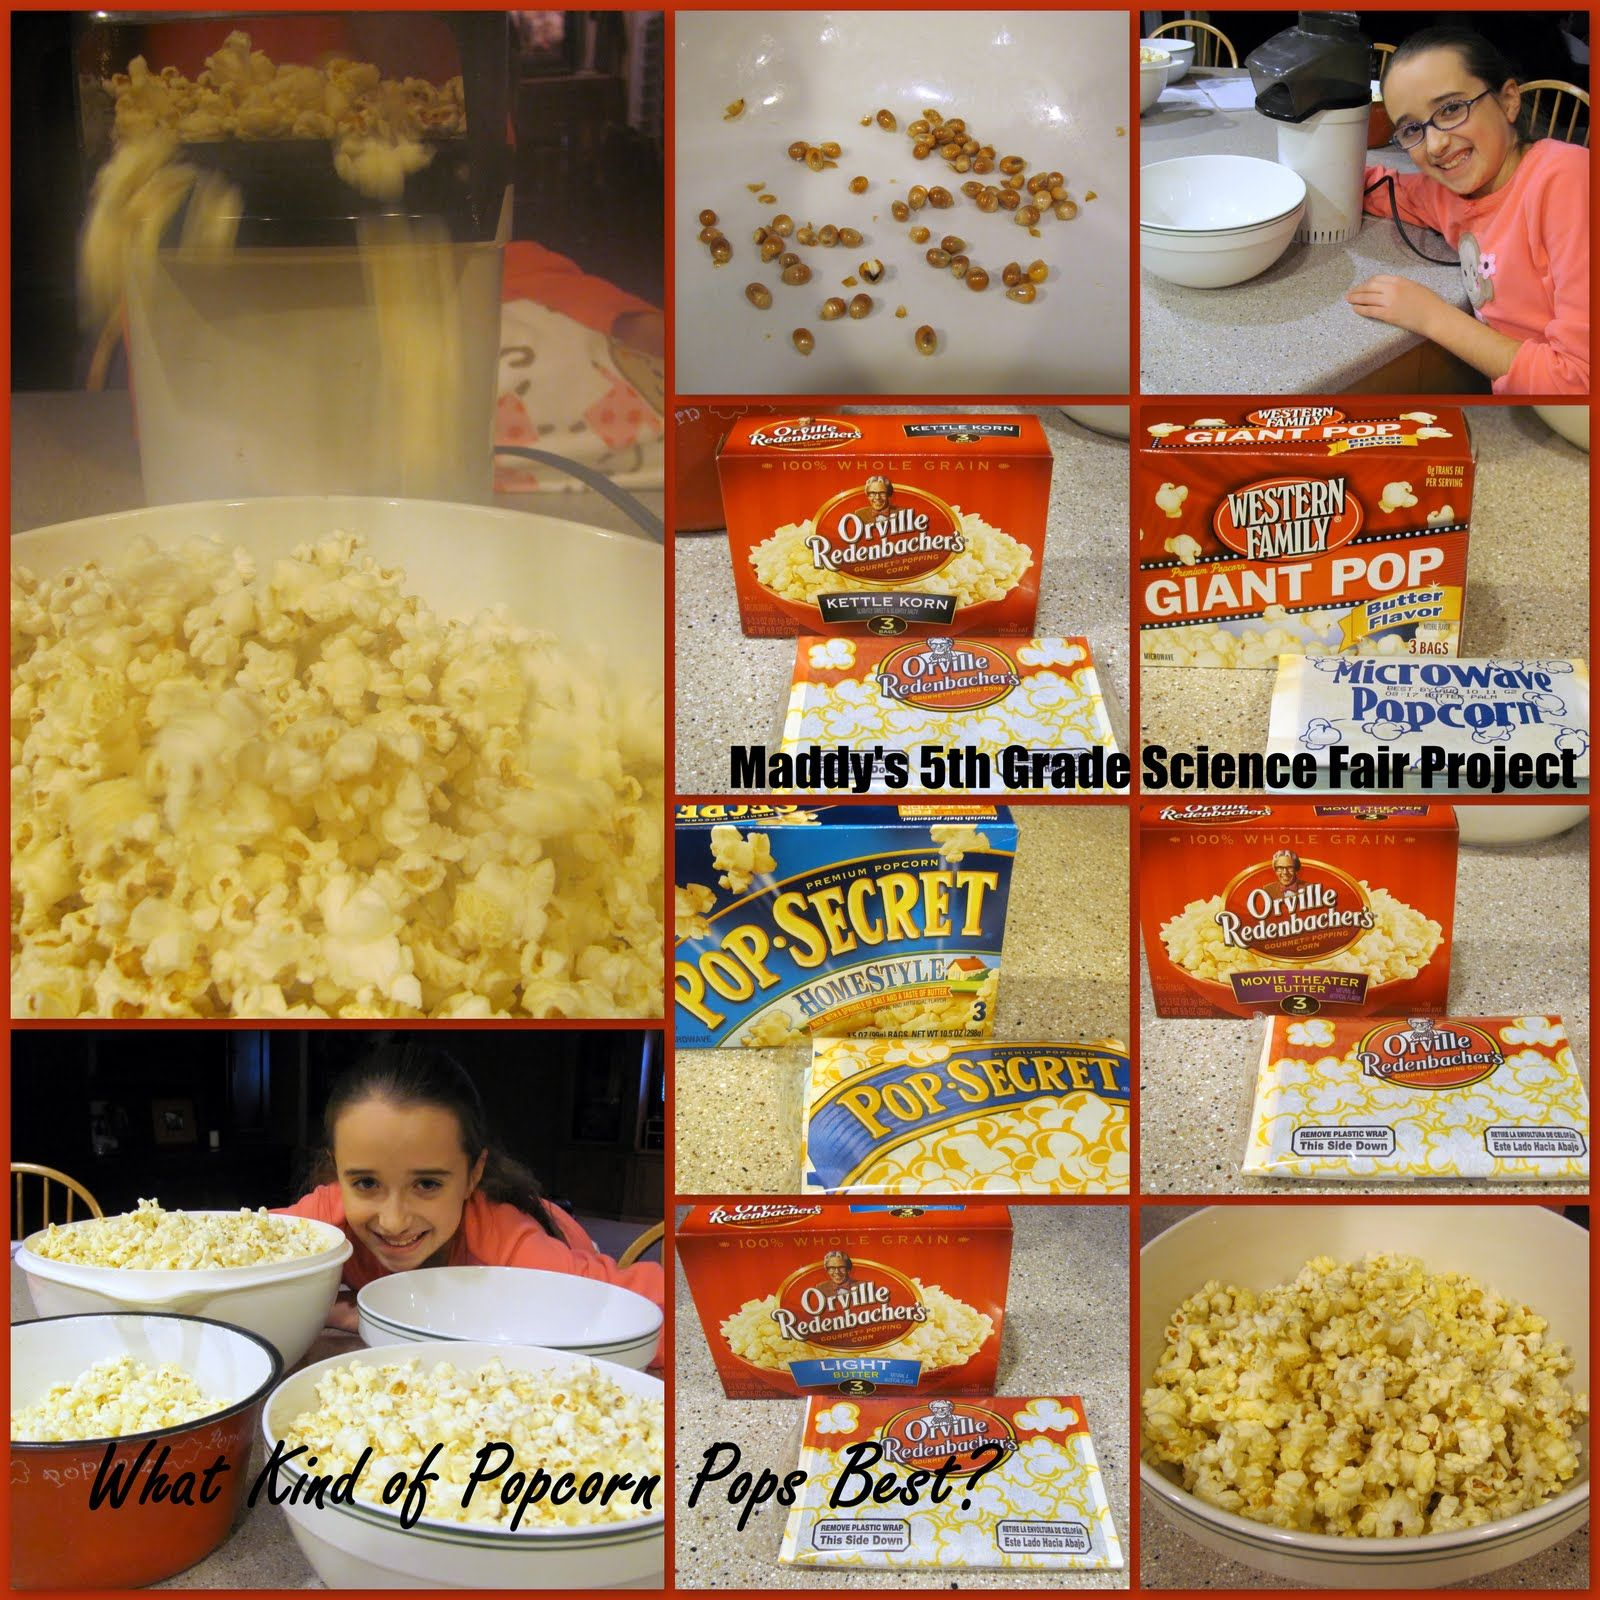 5th Grade Science Projects Popcorn On Top Of That Maddy Had Put It Off Until The Last Days